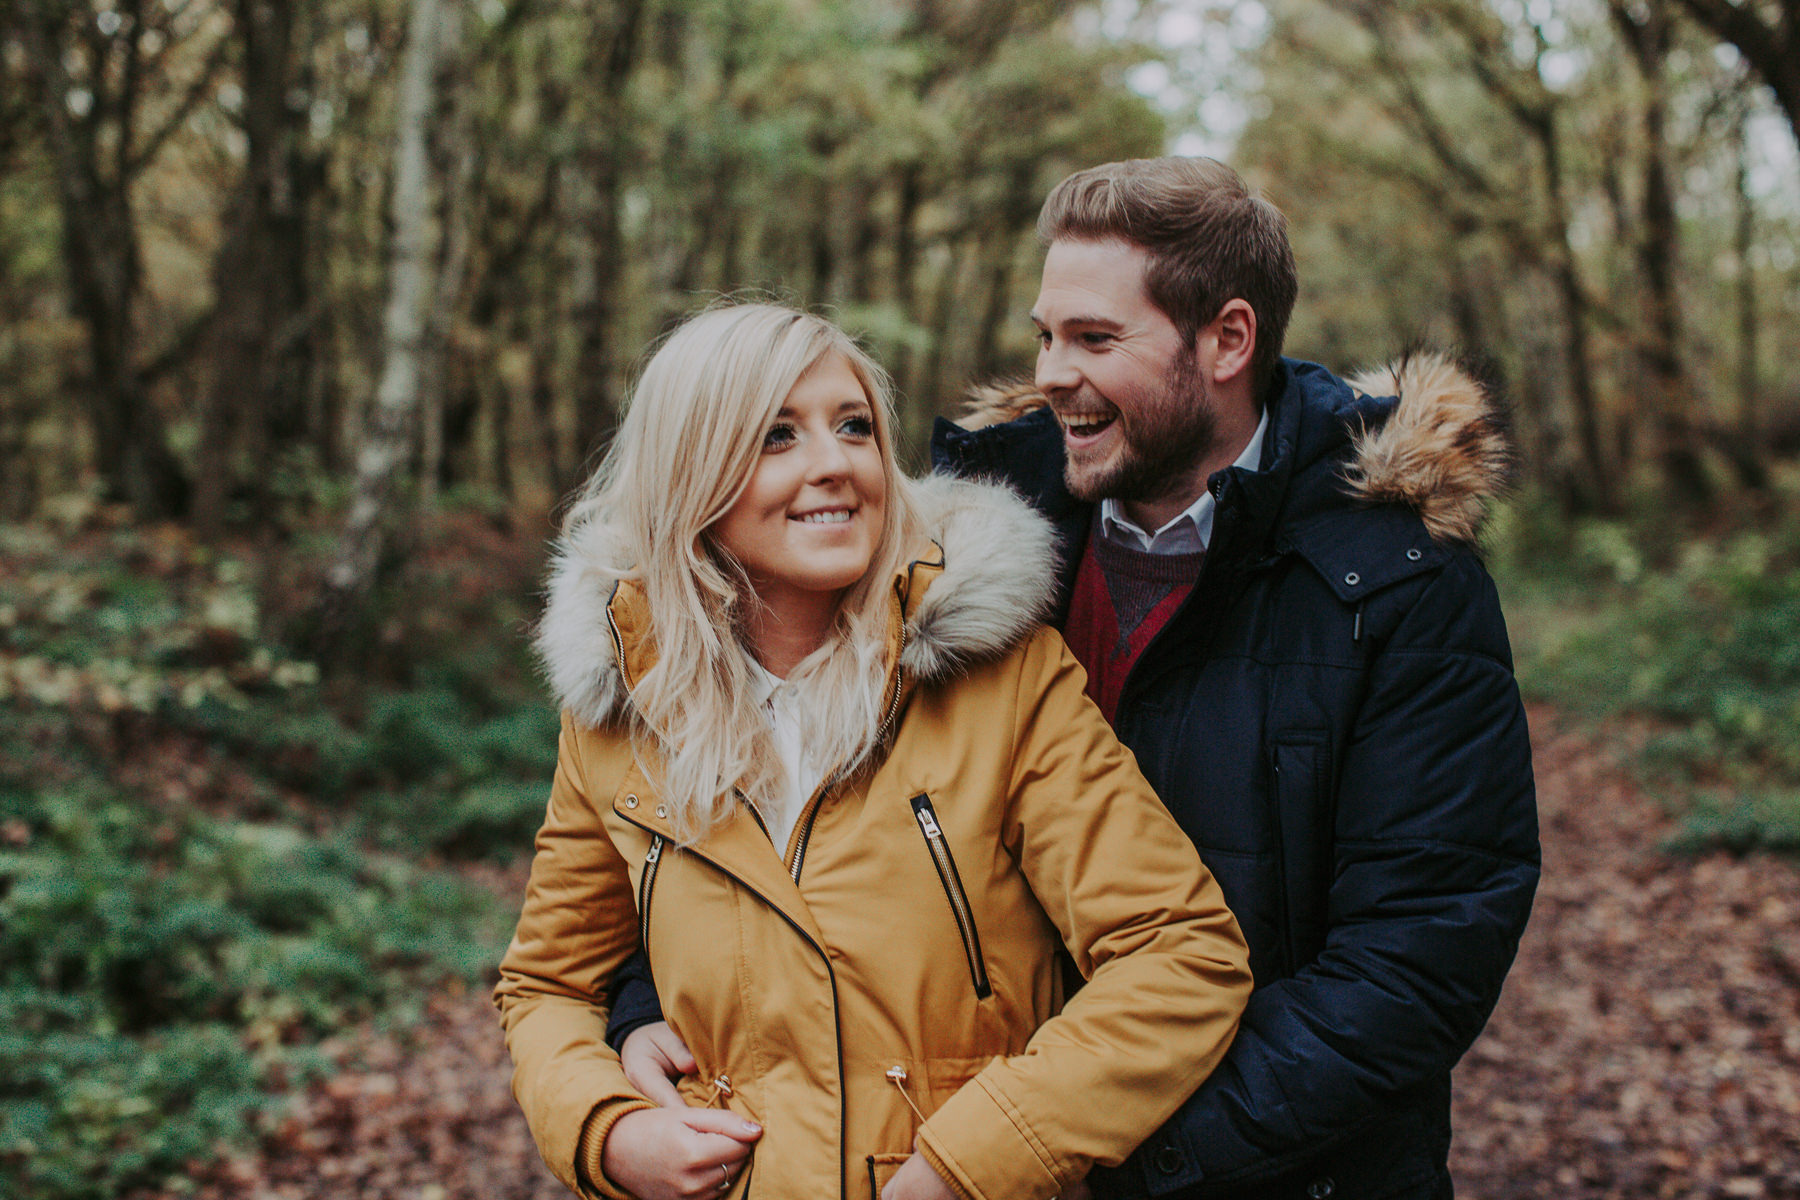 Emily & Phil | Newmillerdam engagement shoot 31